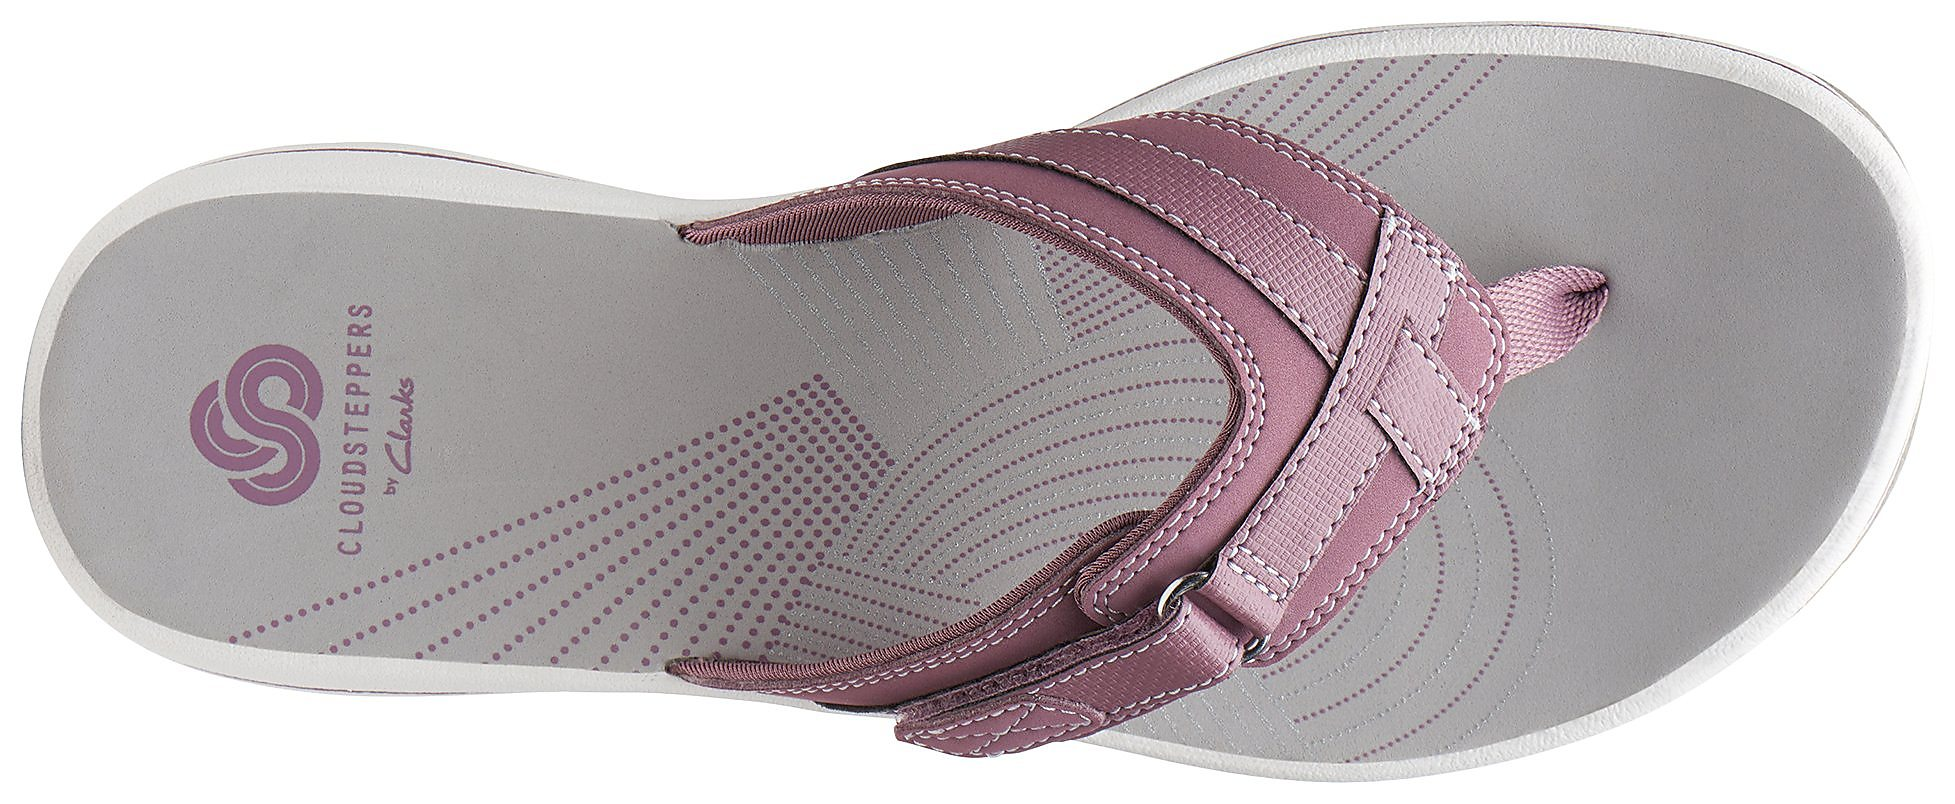 Clarks-Womens-Breeze-Sea-Flip-Flops-Comfort-Summer-Sandals thumbnail 18